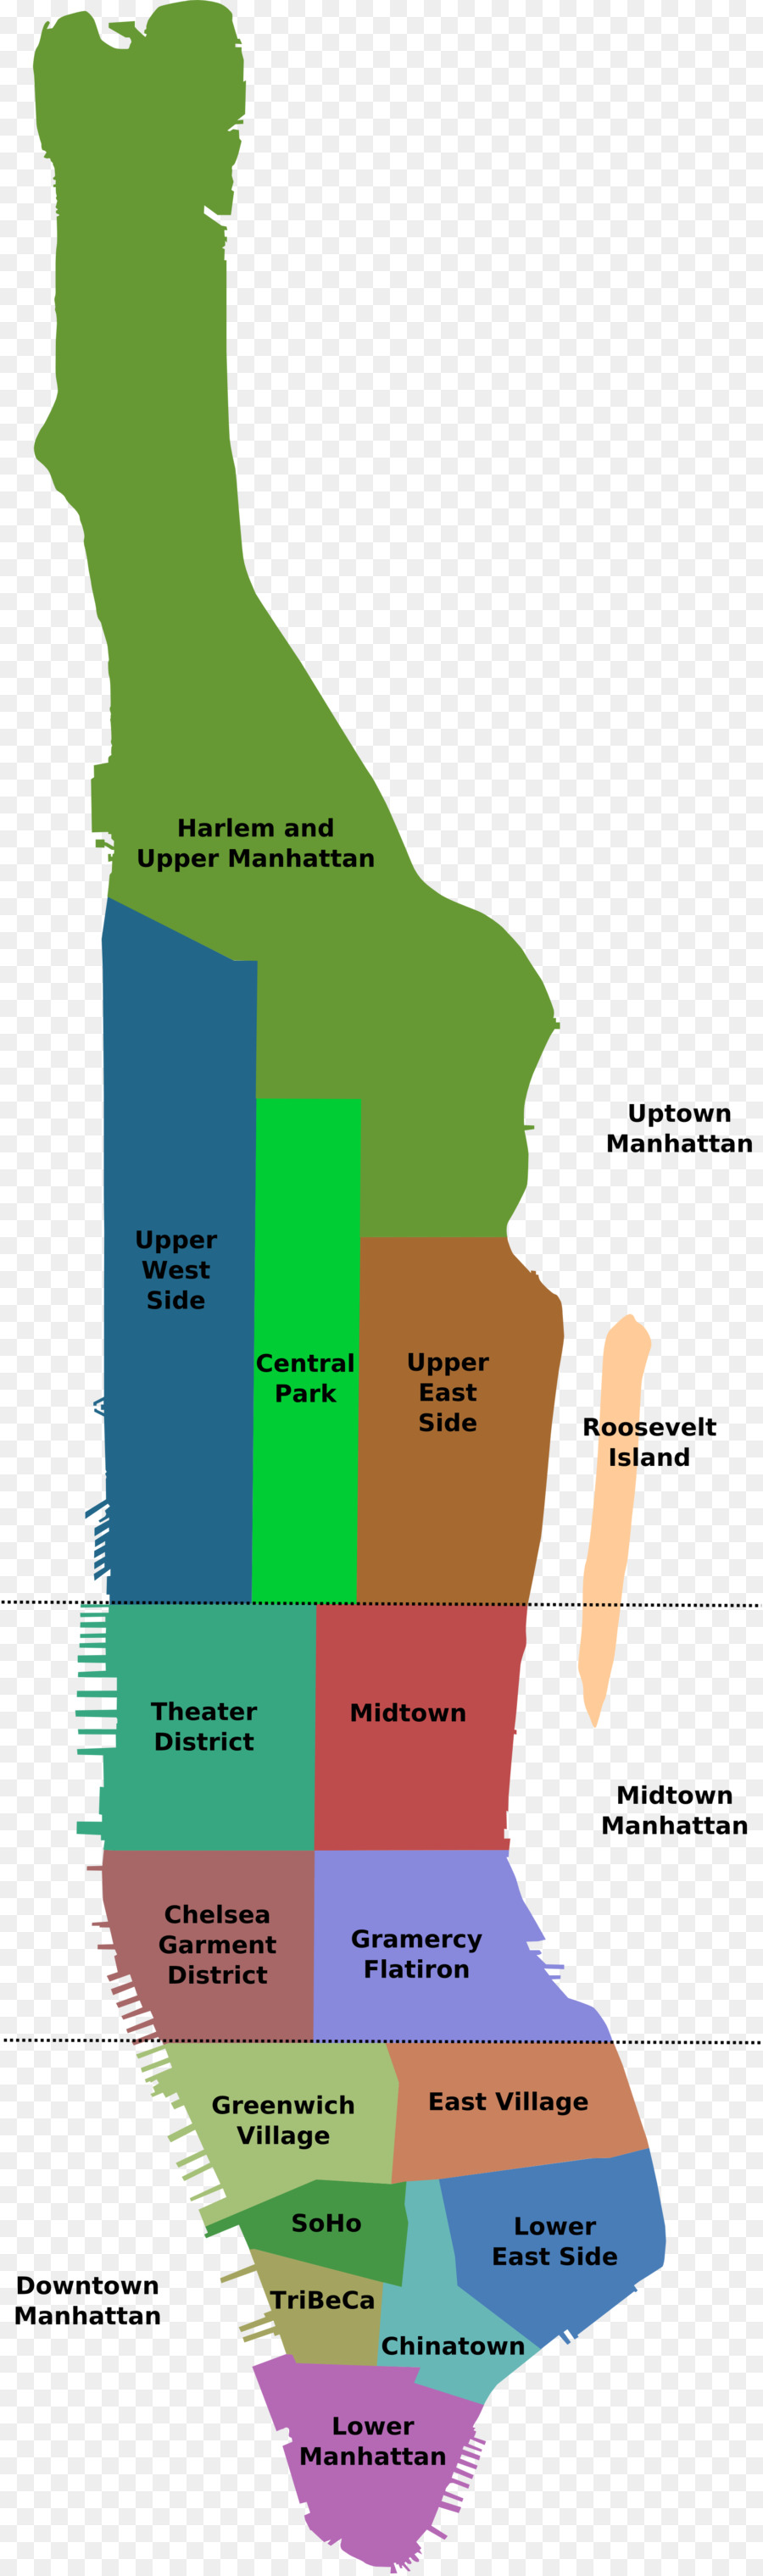 Image Map Manhattan Neighborhood Network District Others Png